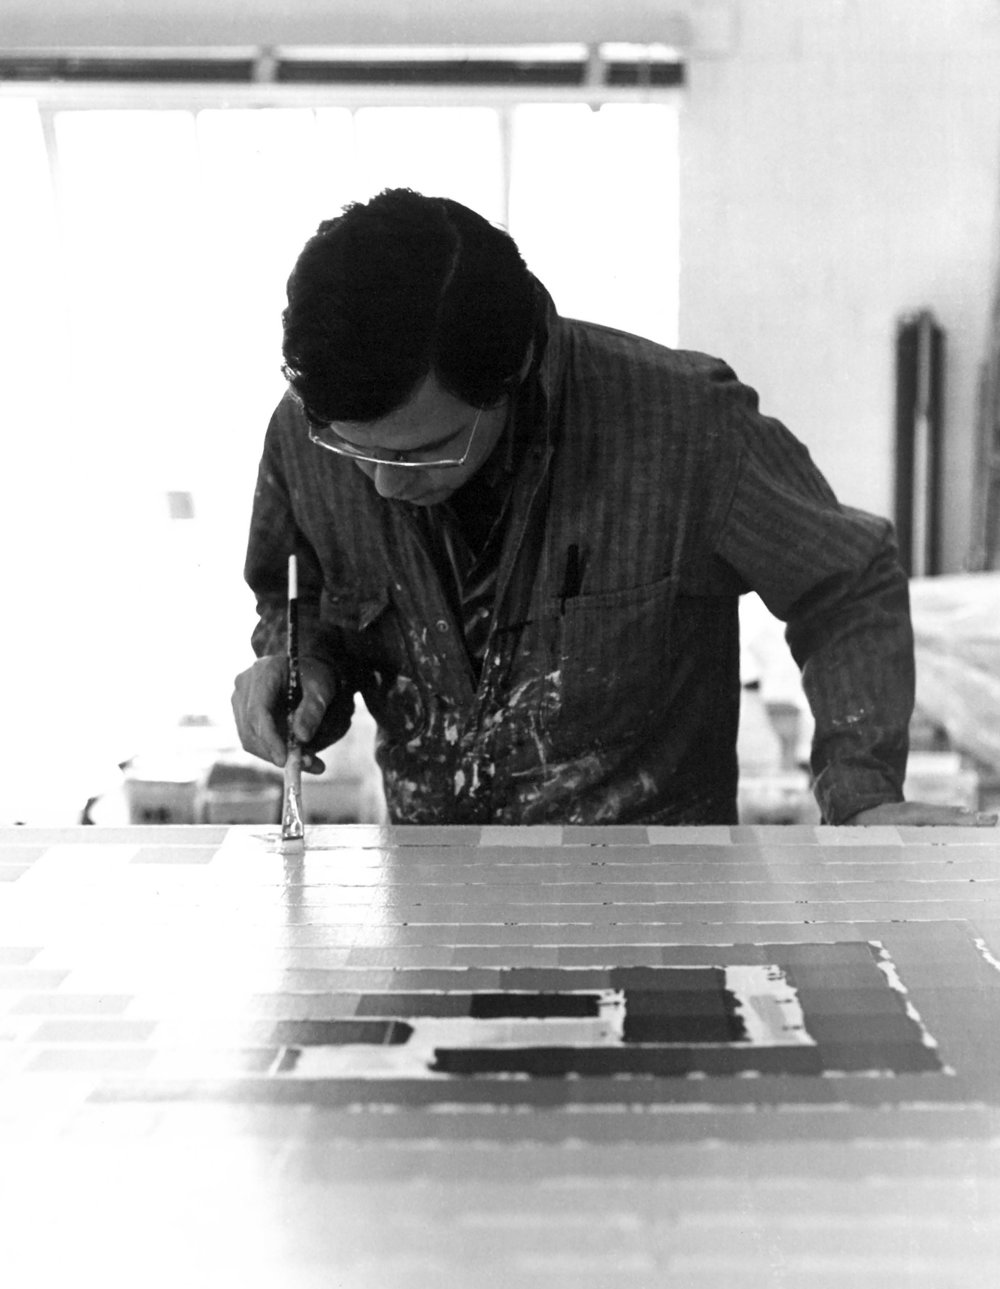 vernon pratt at work in his studio.